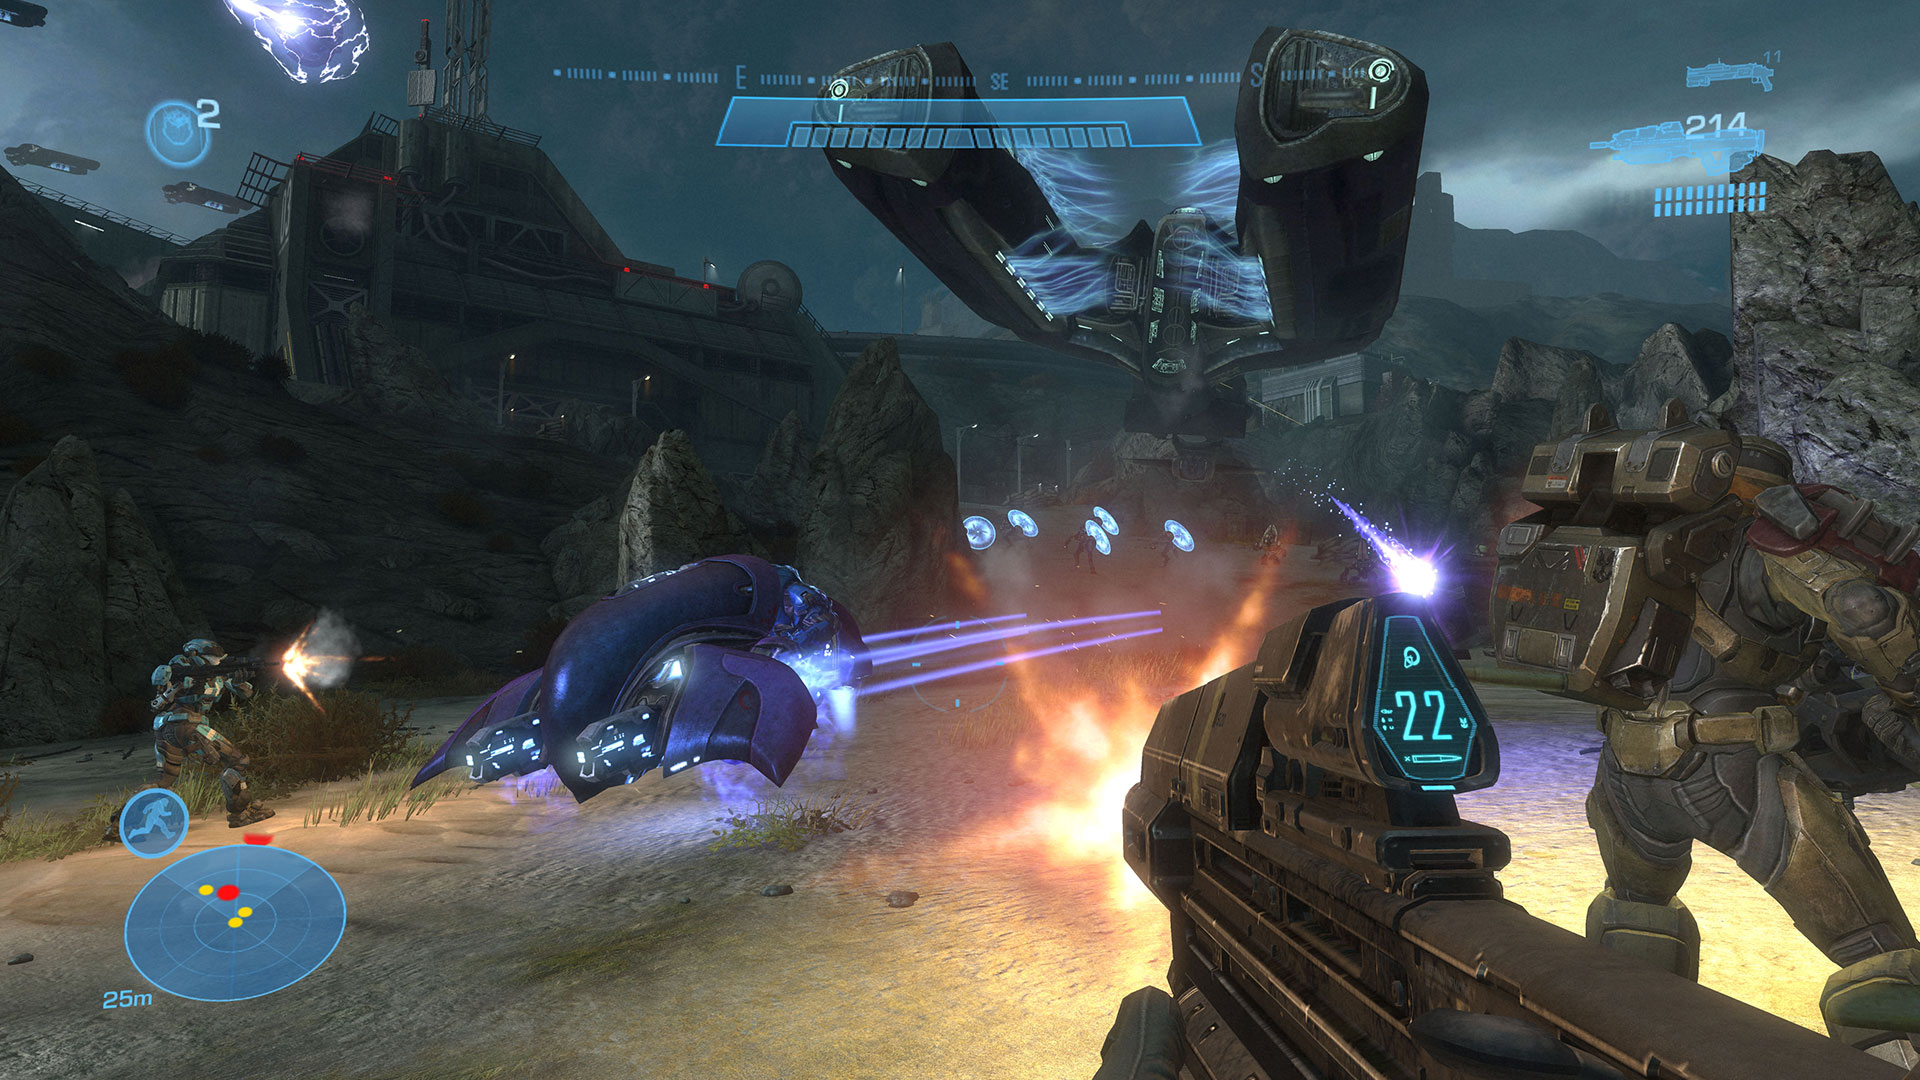 How to Play Halo Reach Online